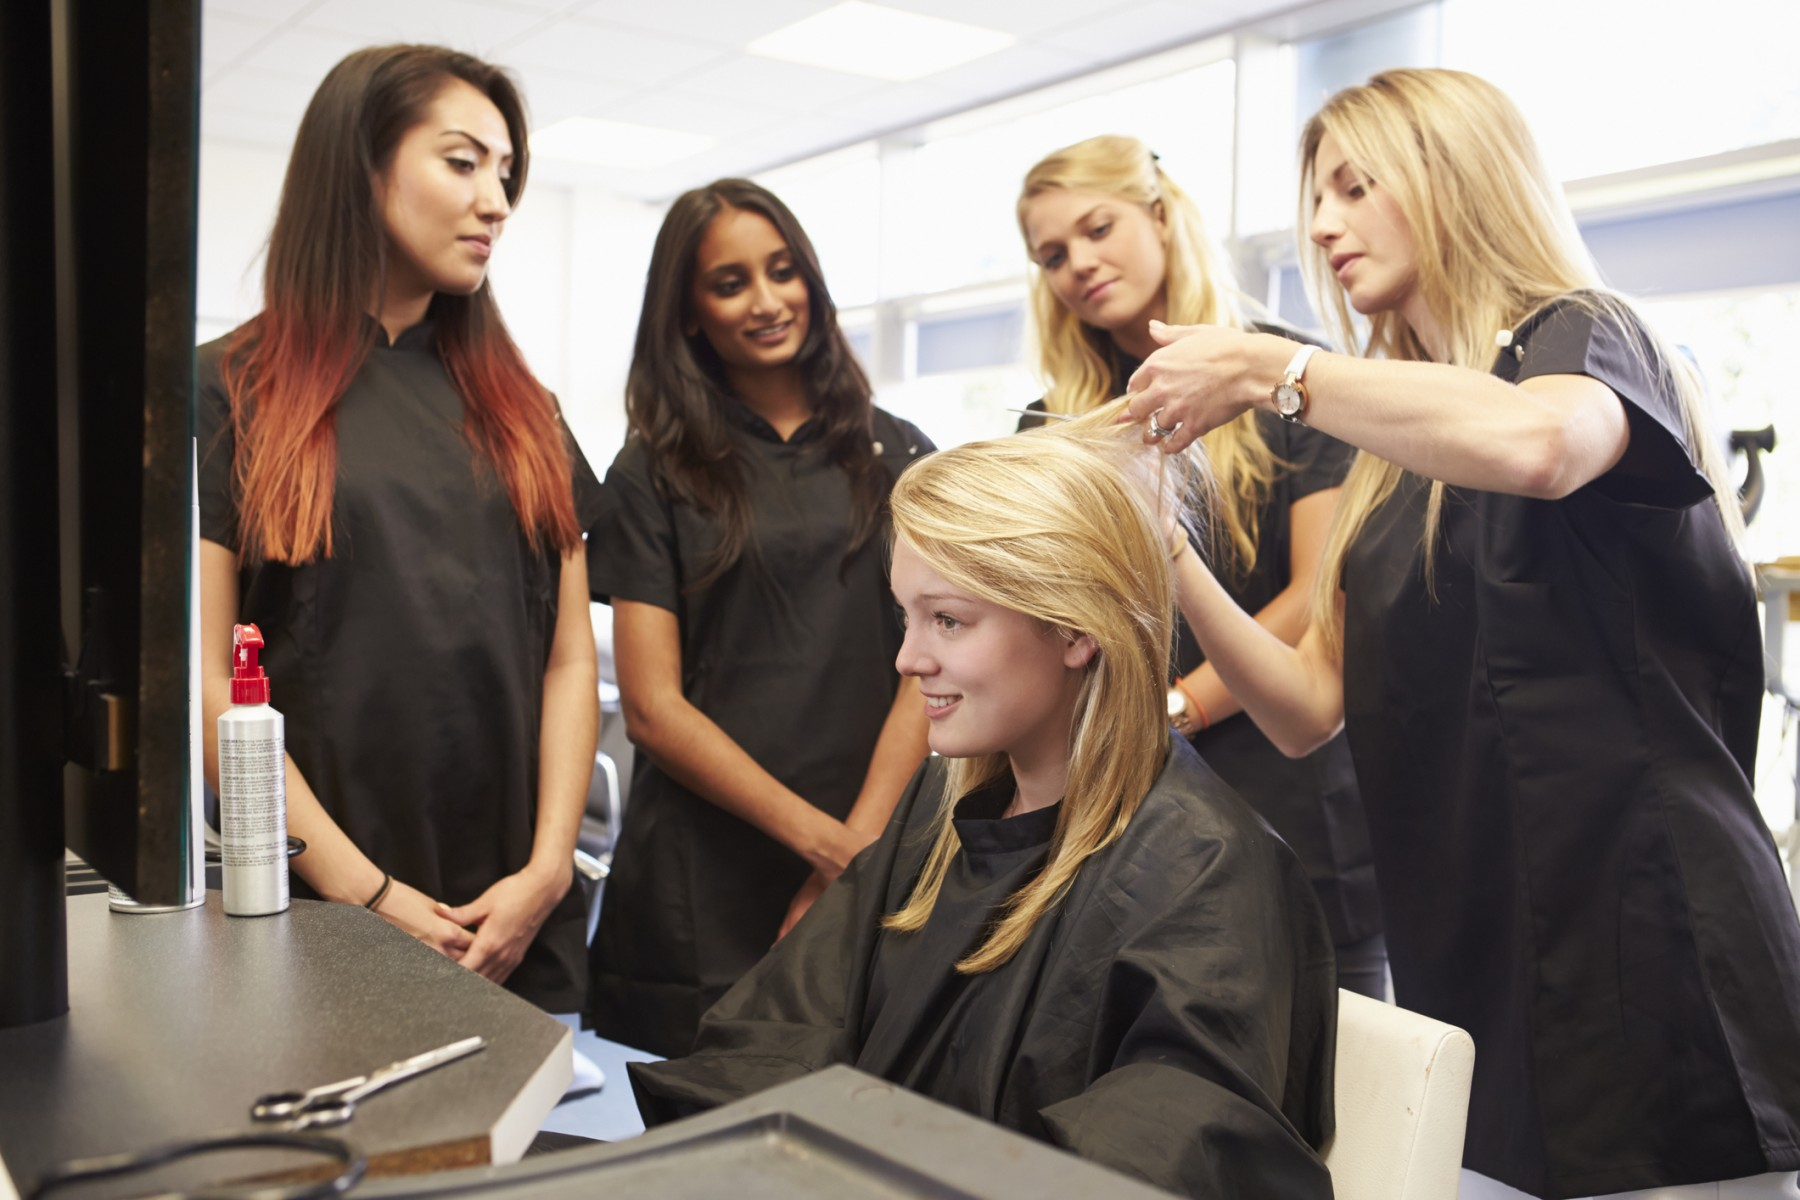 Artarmon Hair salon for sale in busy Sydney suburb in New South Wales